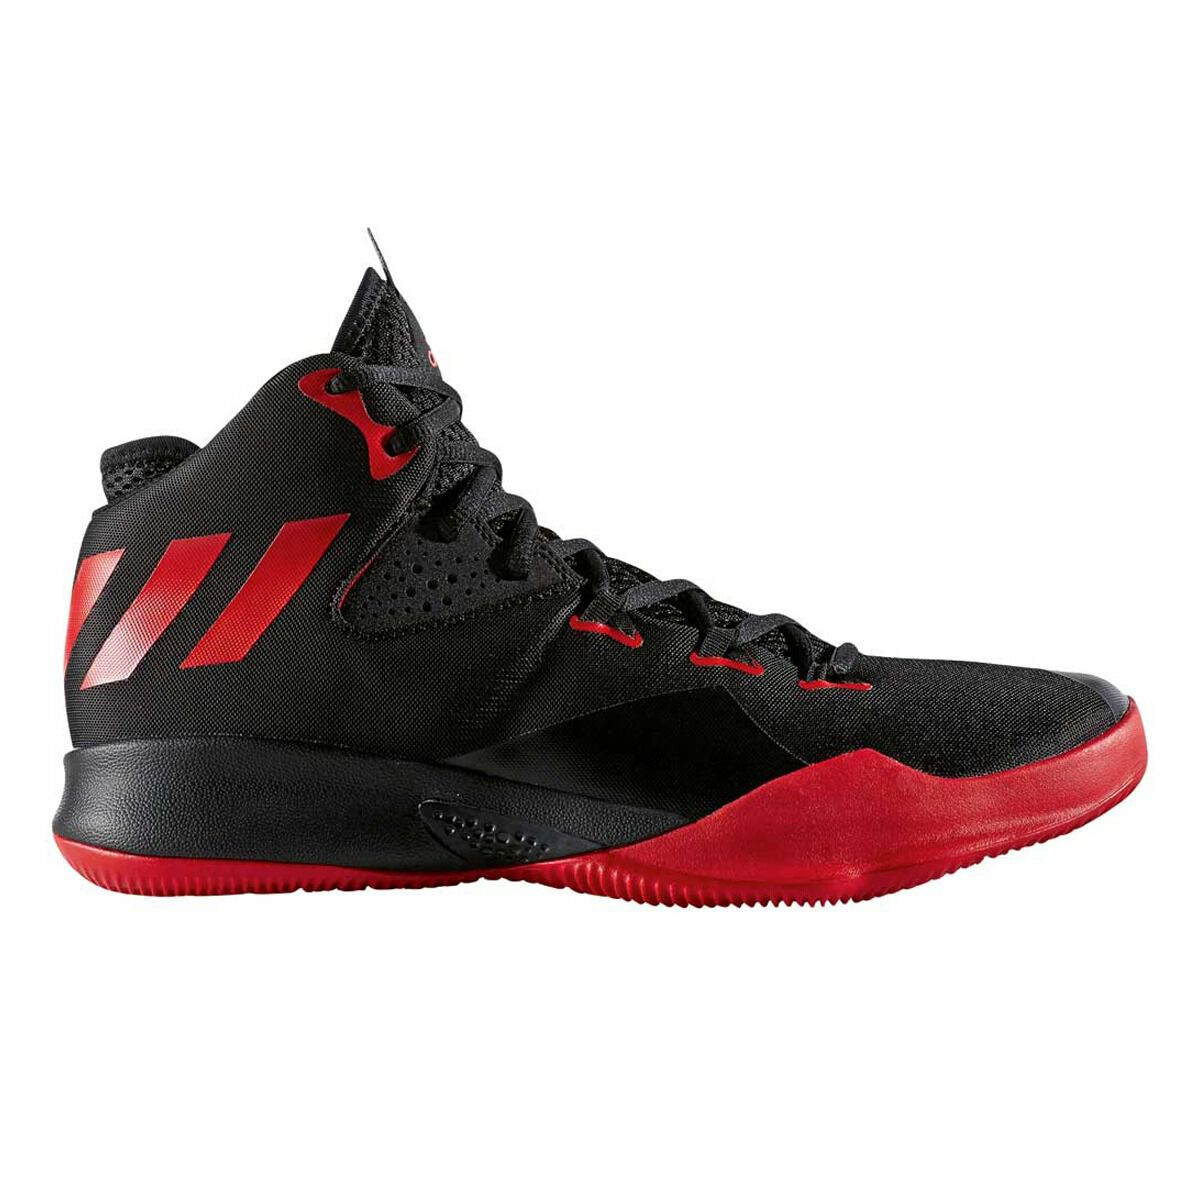 adidas Dual Threat Mens Basketball Shoes Red Black US 10